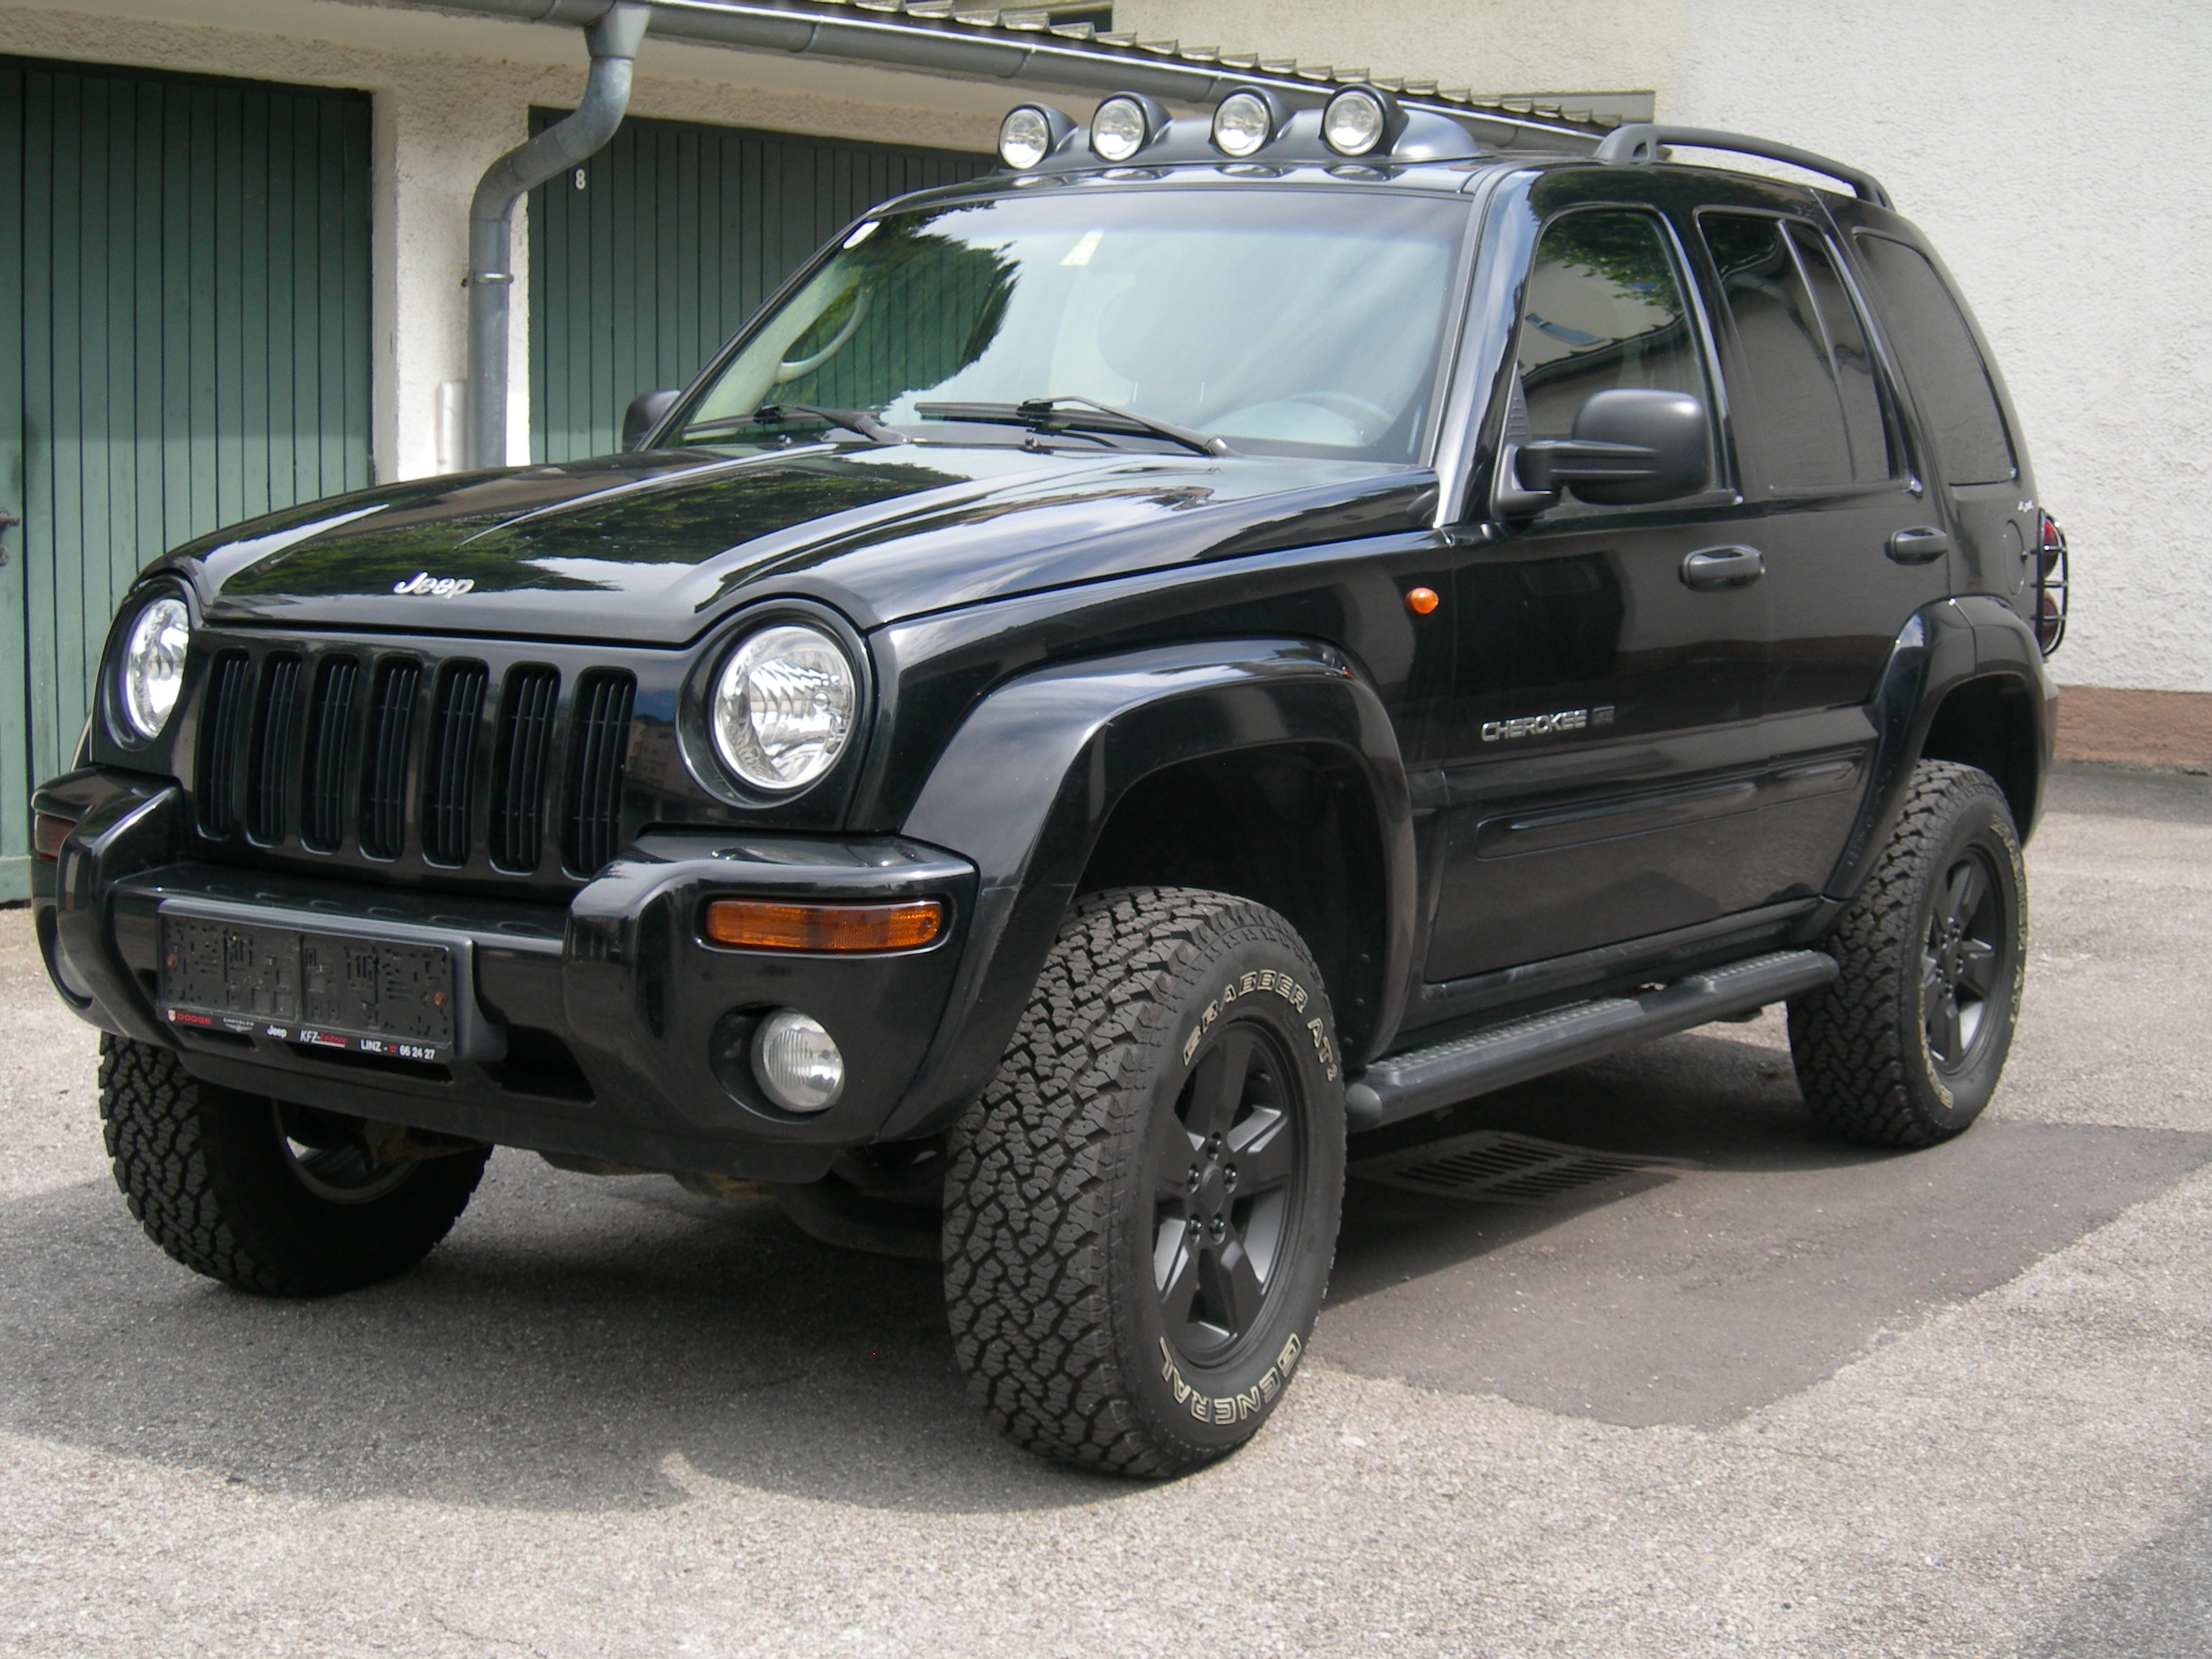 2003 jeep cherokee kj pictures information and specs. Black Bedroom Furniture Sets. Home Design Ideas